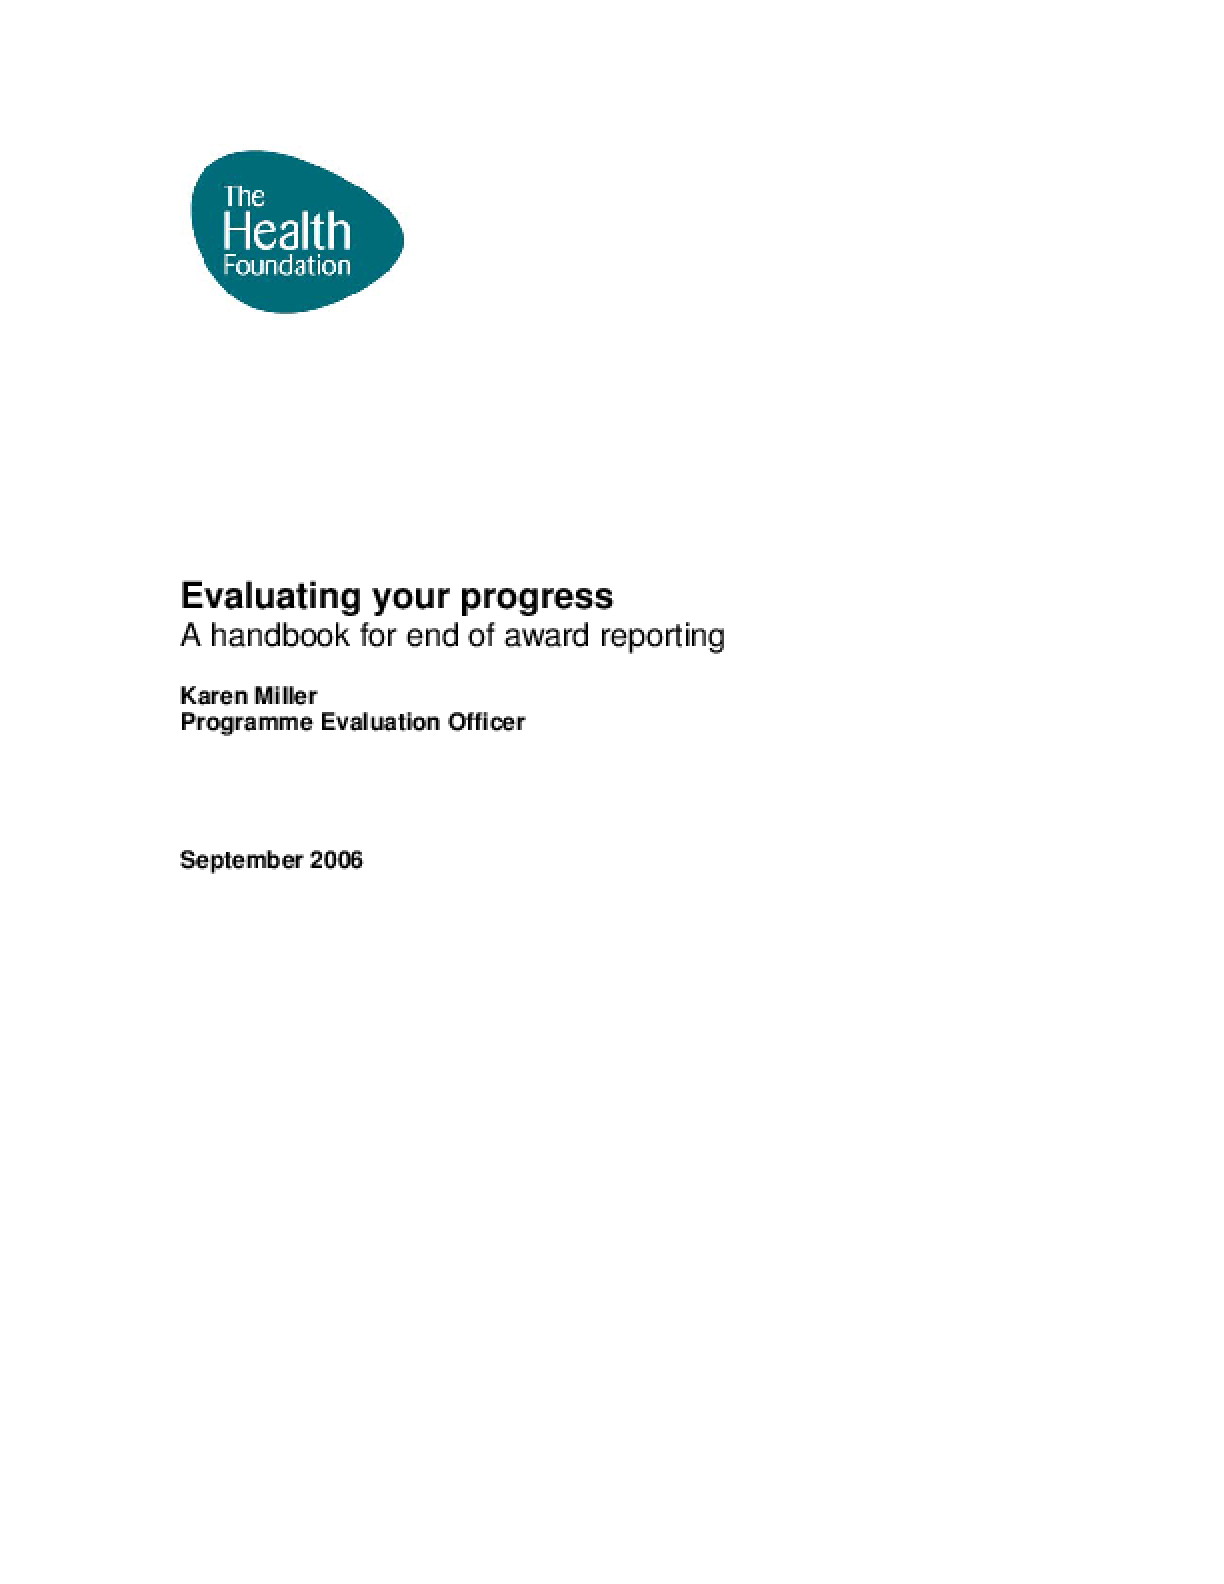 Evaluating Your Progress: A Handbook for End of Award Reporting